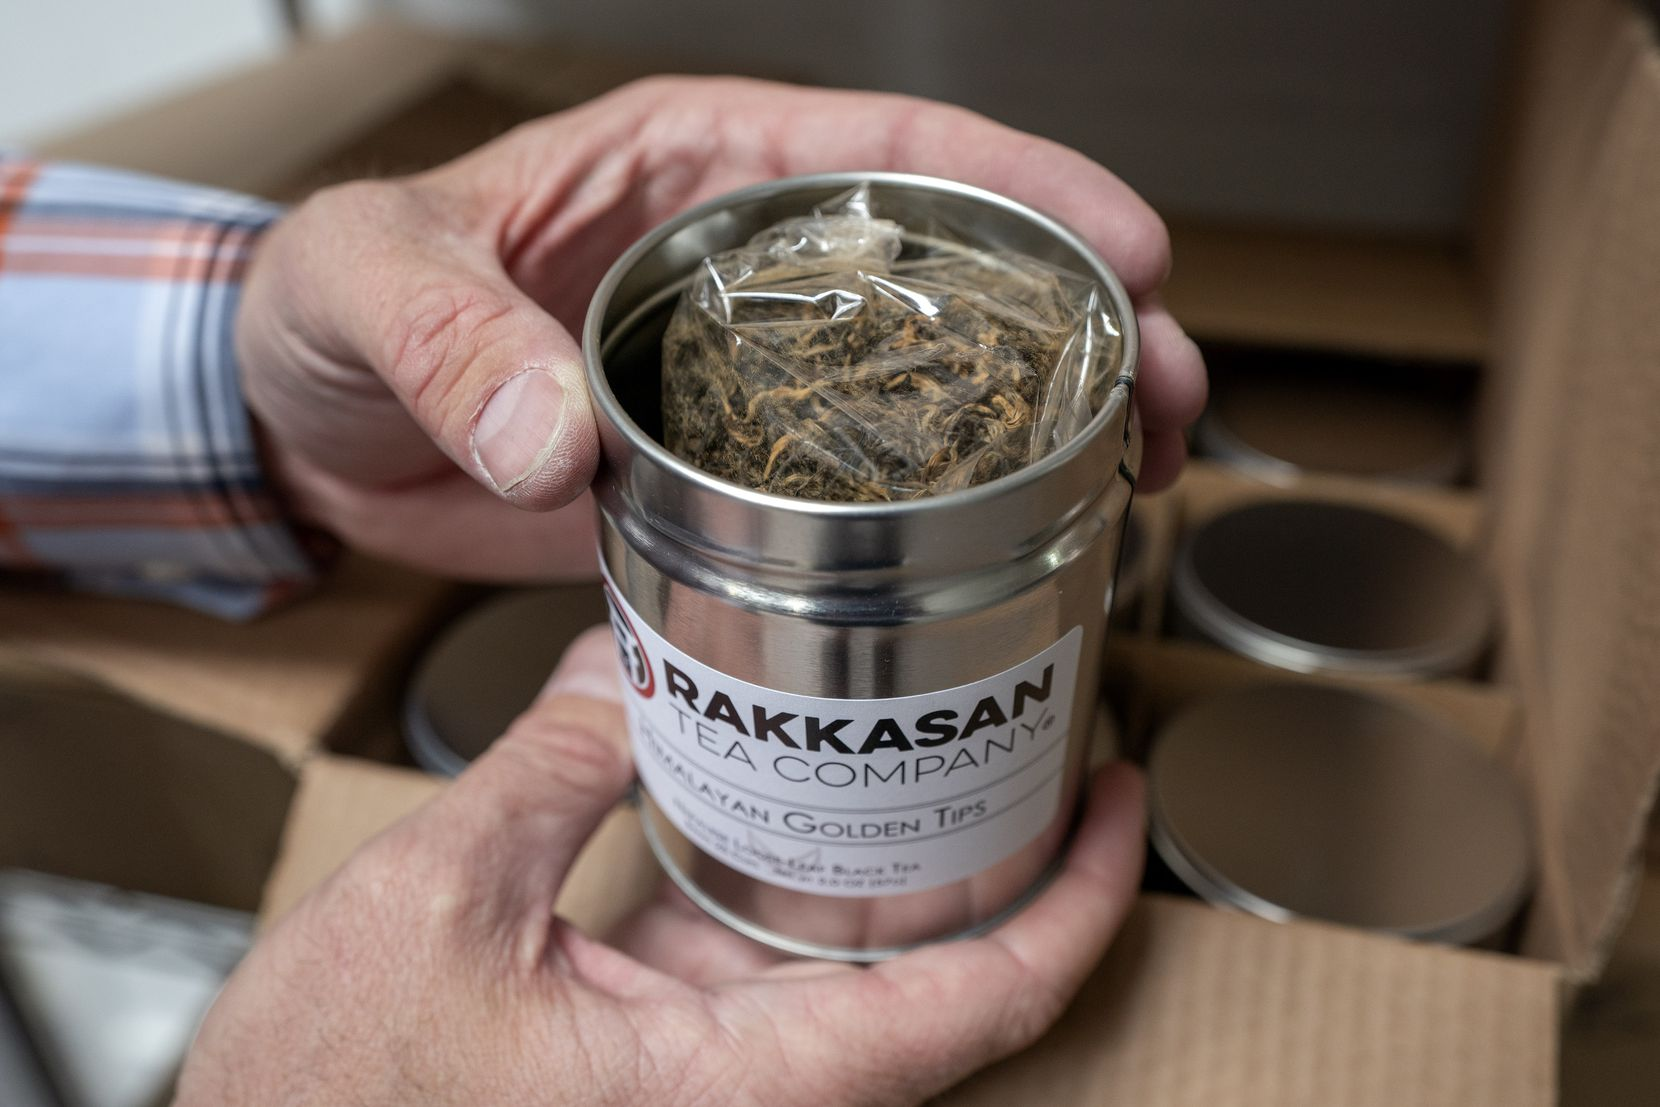 TK Kamauf holds a canister of Rakkasan Tea's Himalayan Golden Tips, his favorite tea.